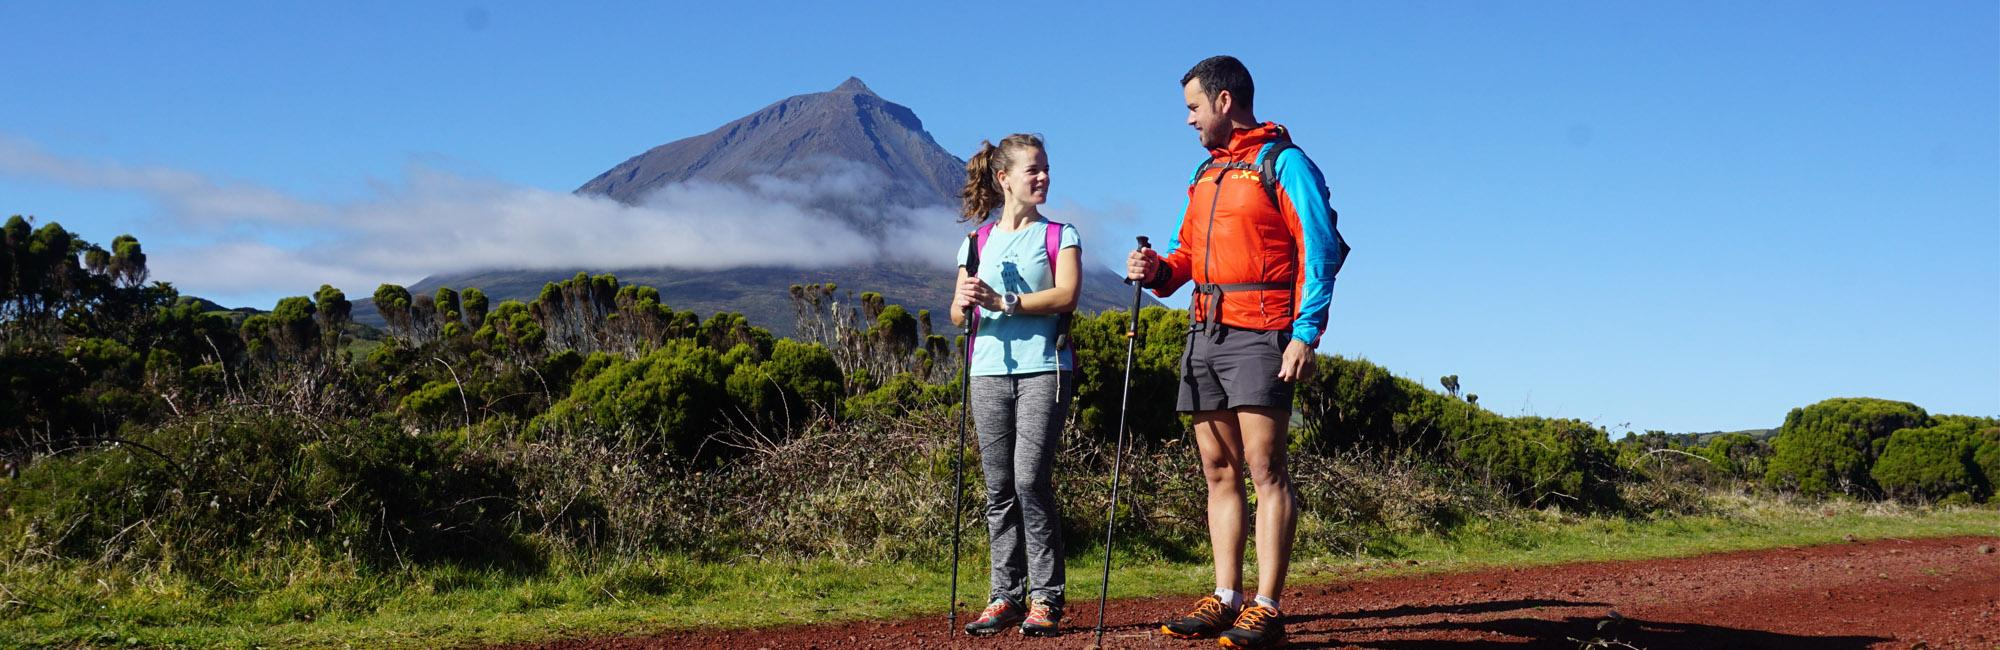 hikers on Pico Island